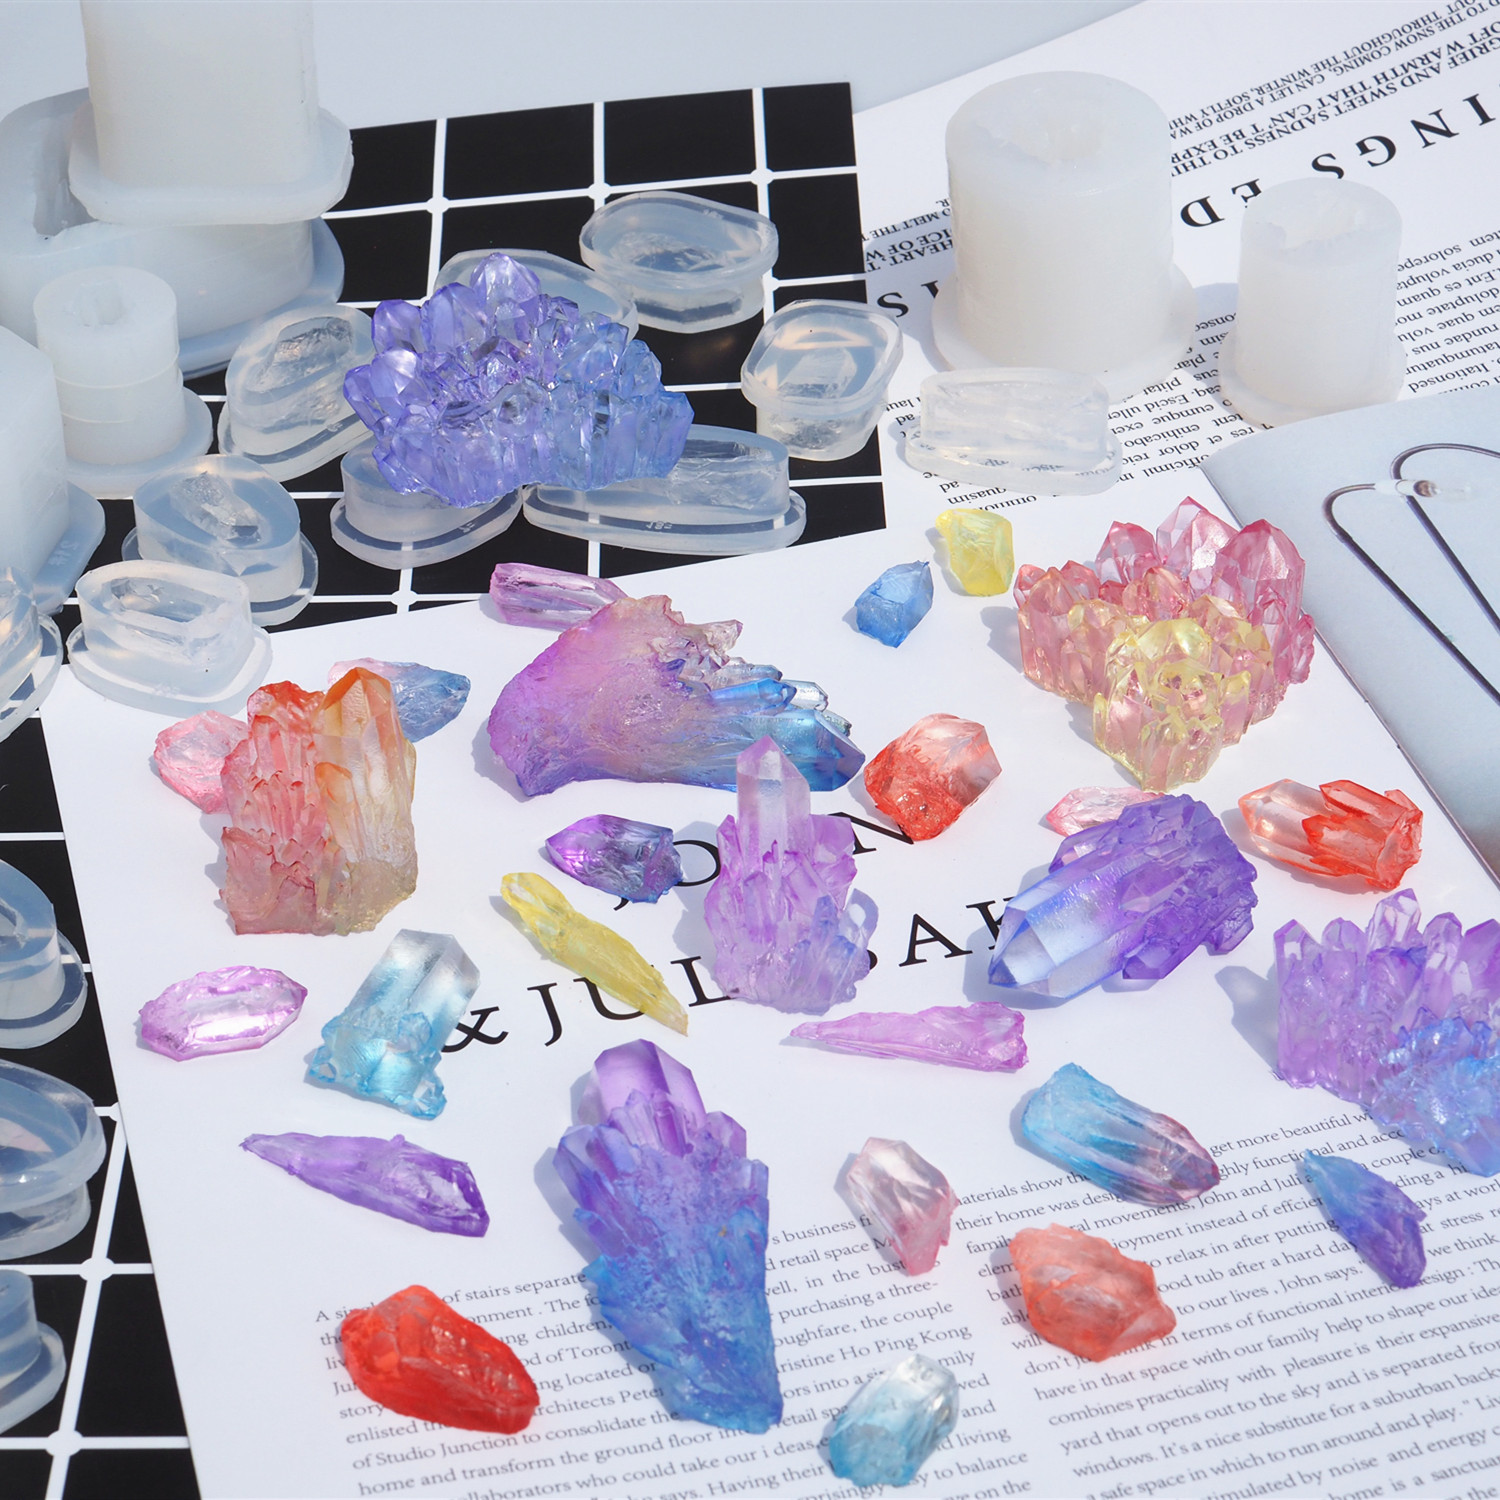 Crystal Cluster Silicone Molds Dried Flower Charms DIY Tool Epoxy Resin Craft Mineral Shape Jewelry Pendant Making Mould